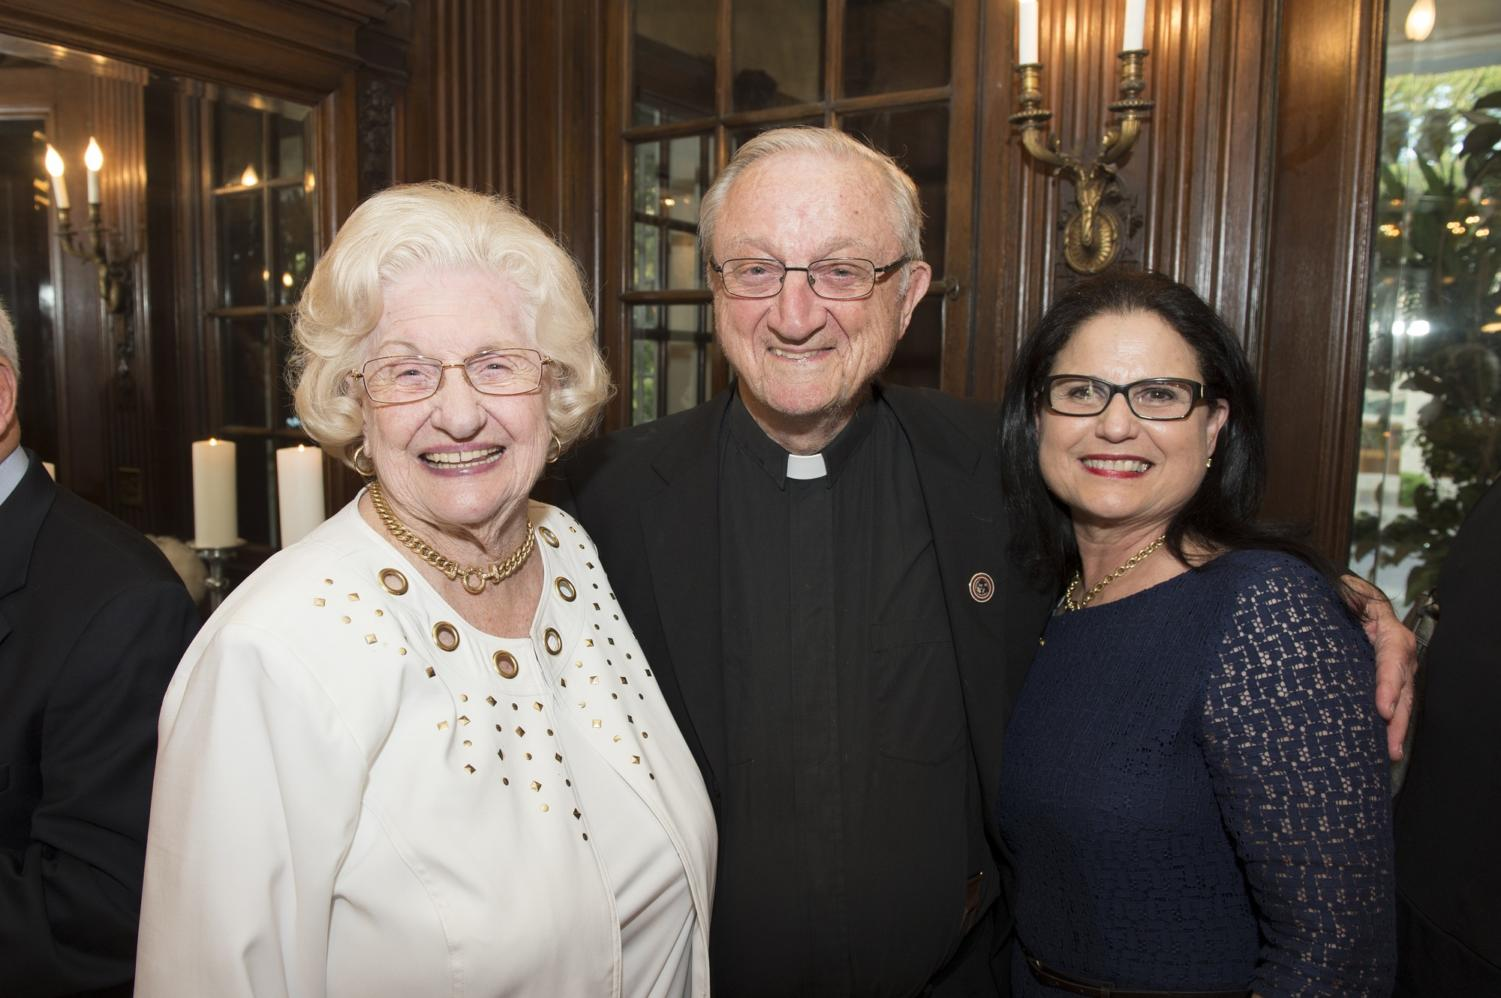 Maedell Hoover Braud (left), the Rev. James Carter, S.J., and Marla Donavan pictured at the 2015 Heritage Society Reception. Braud was recognized consistently throughout her lifetime for supporting Loyola and a number of Jesuit institutions Photo credit: courtersy of Monique Gardner